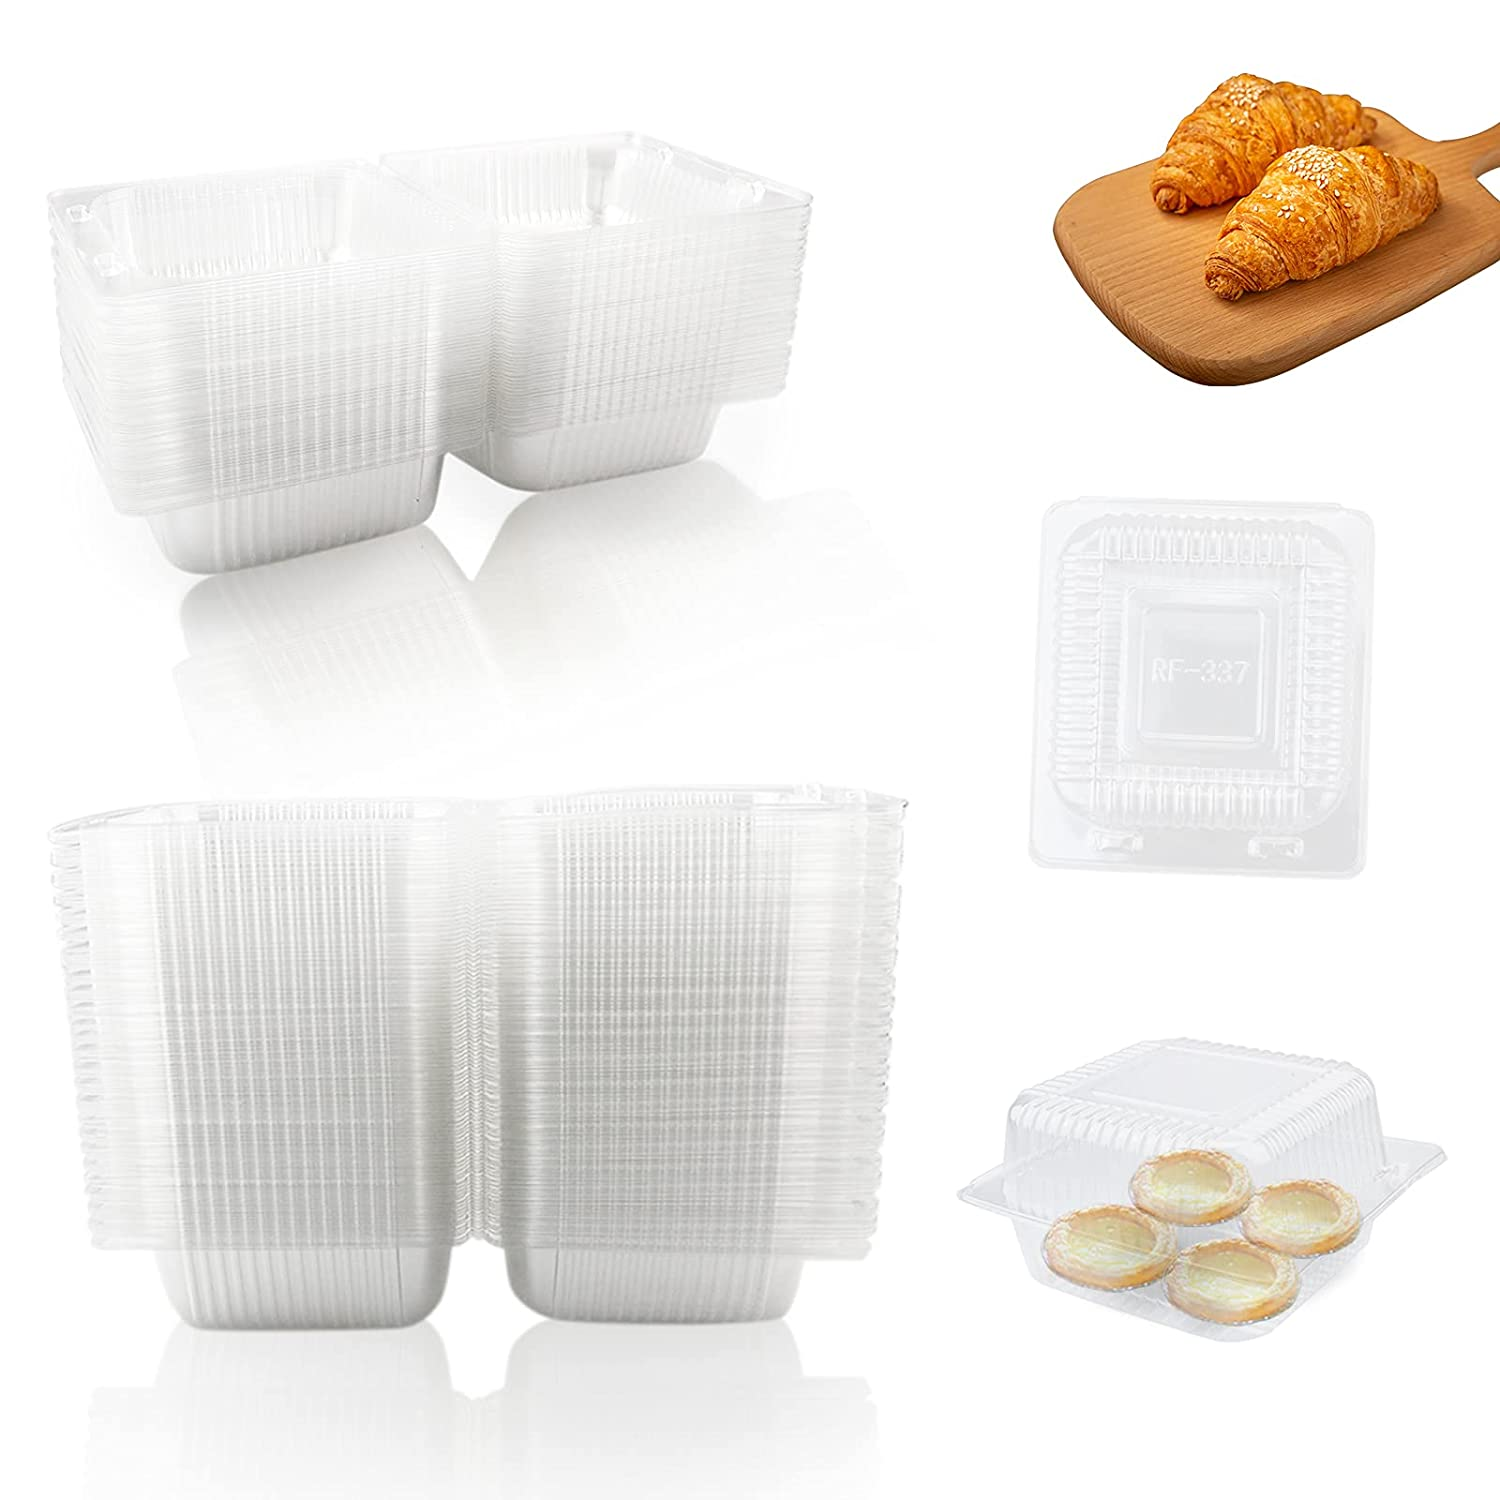 TKOnline 100 Pcs Clear Plastic Square Food Containers, Disposable Clamshell Cupcake Cups Holders for Sandwiches, Fruit, Bread Preseration(5.4